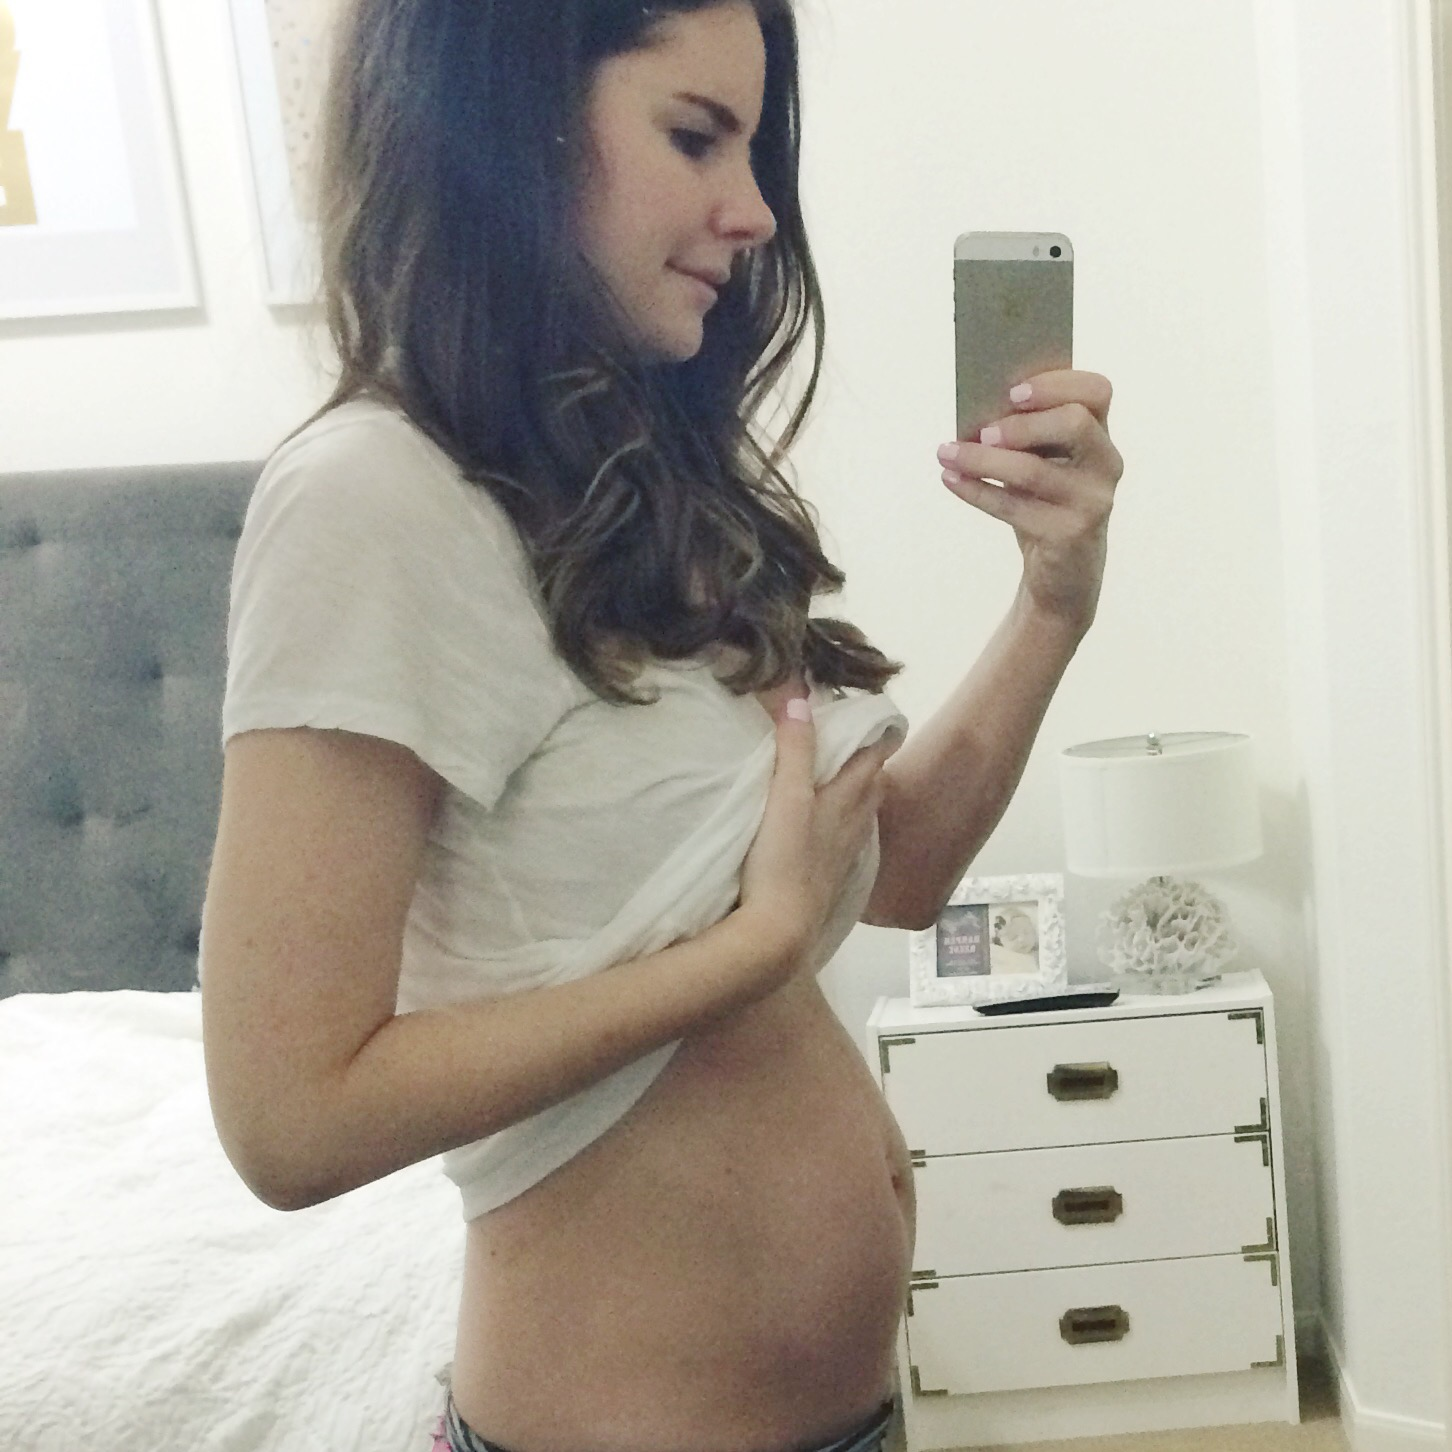 Veronika S Blushing 18 Weeks: 21 Weeks With Baby #2